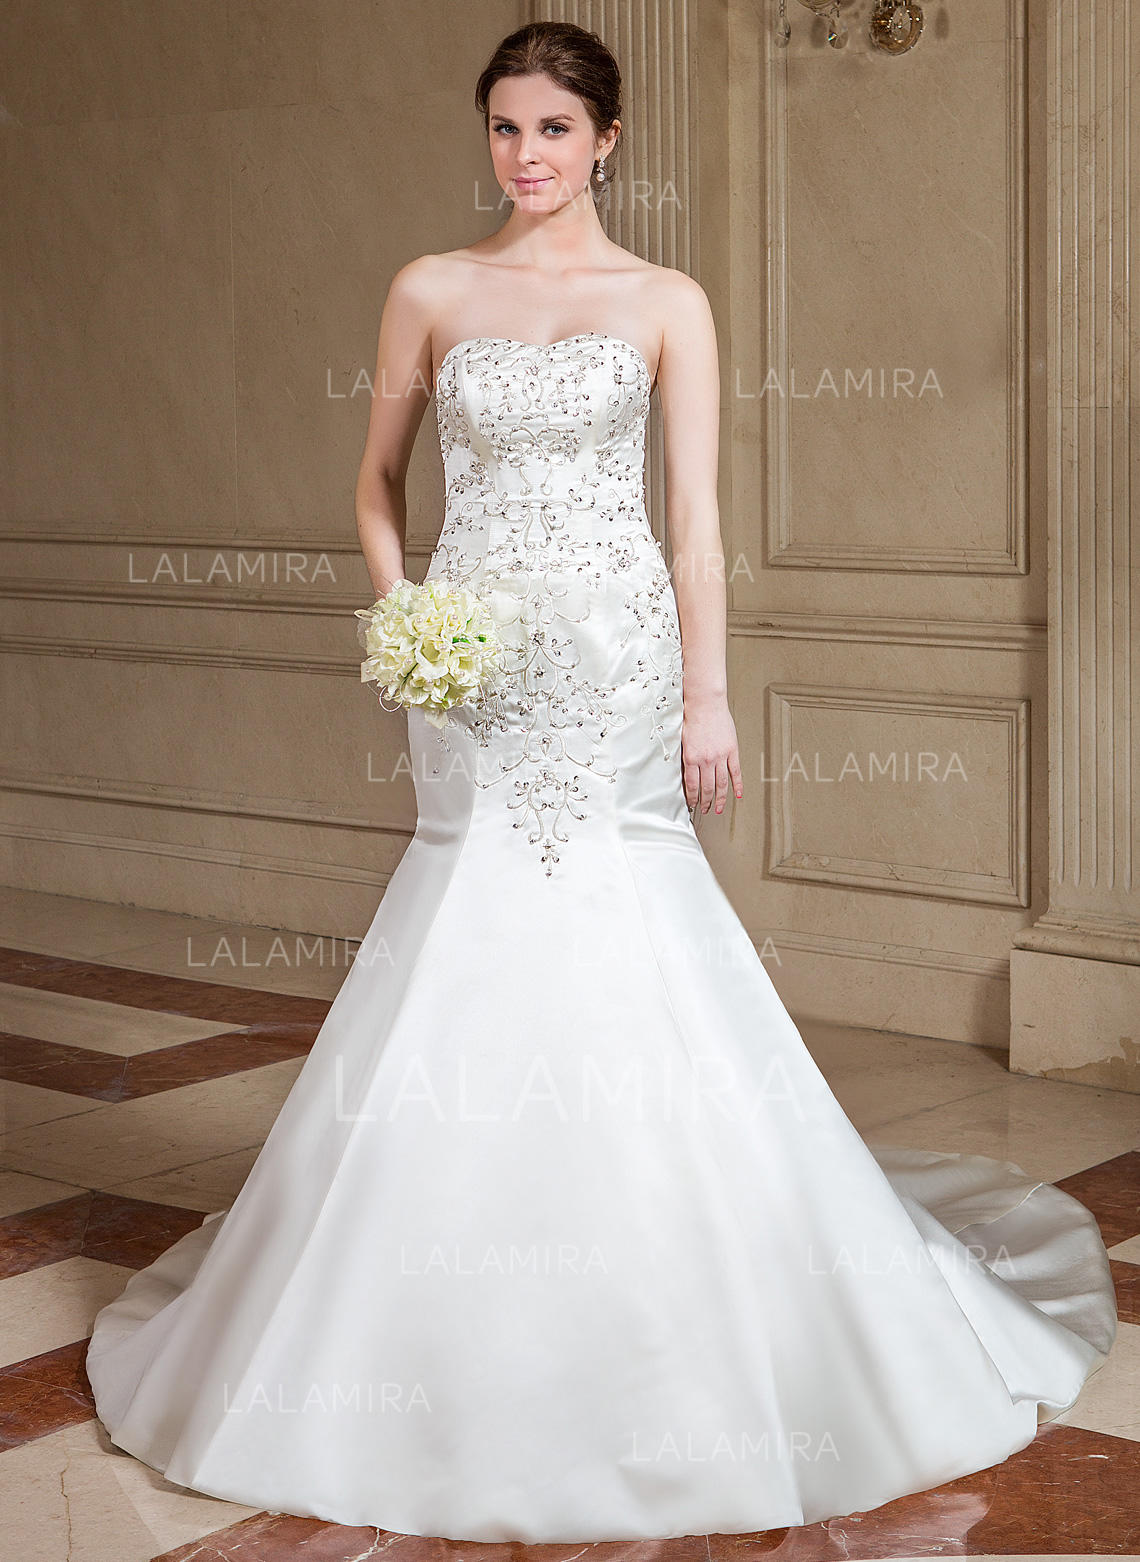 599f6a263b1 Trumpet Mermaid Sweetheart Cathedral Train Wedding Dresses With Beading  Sequins (002000463). Loading zoom